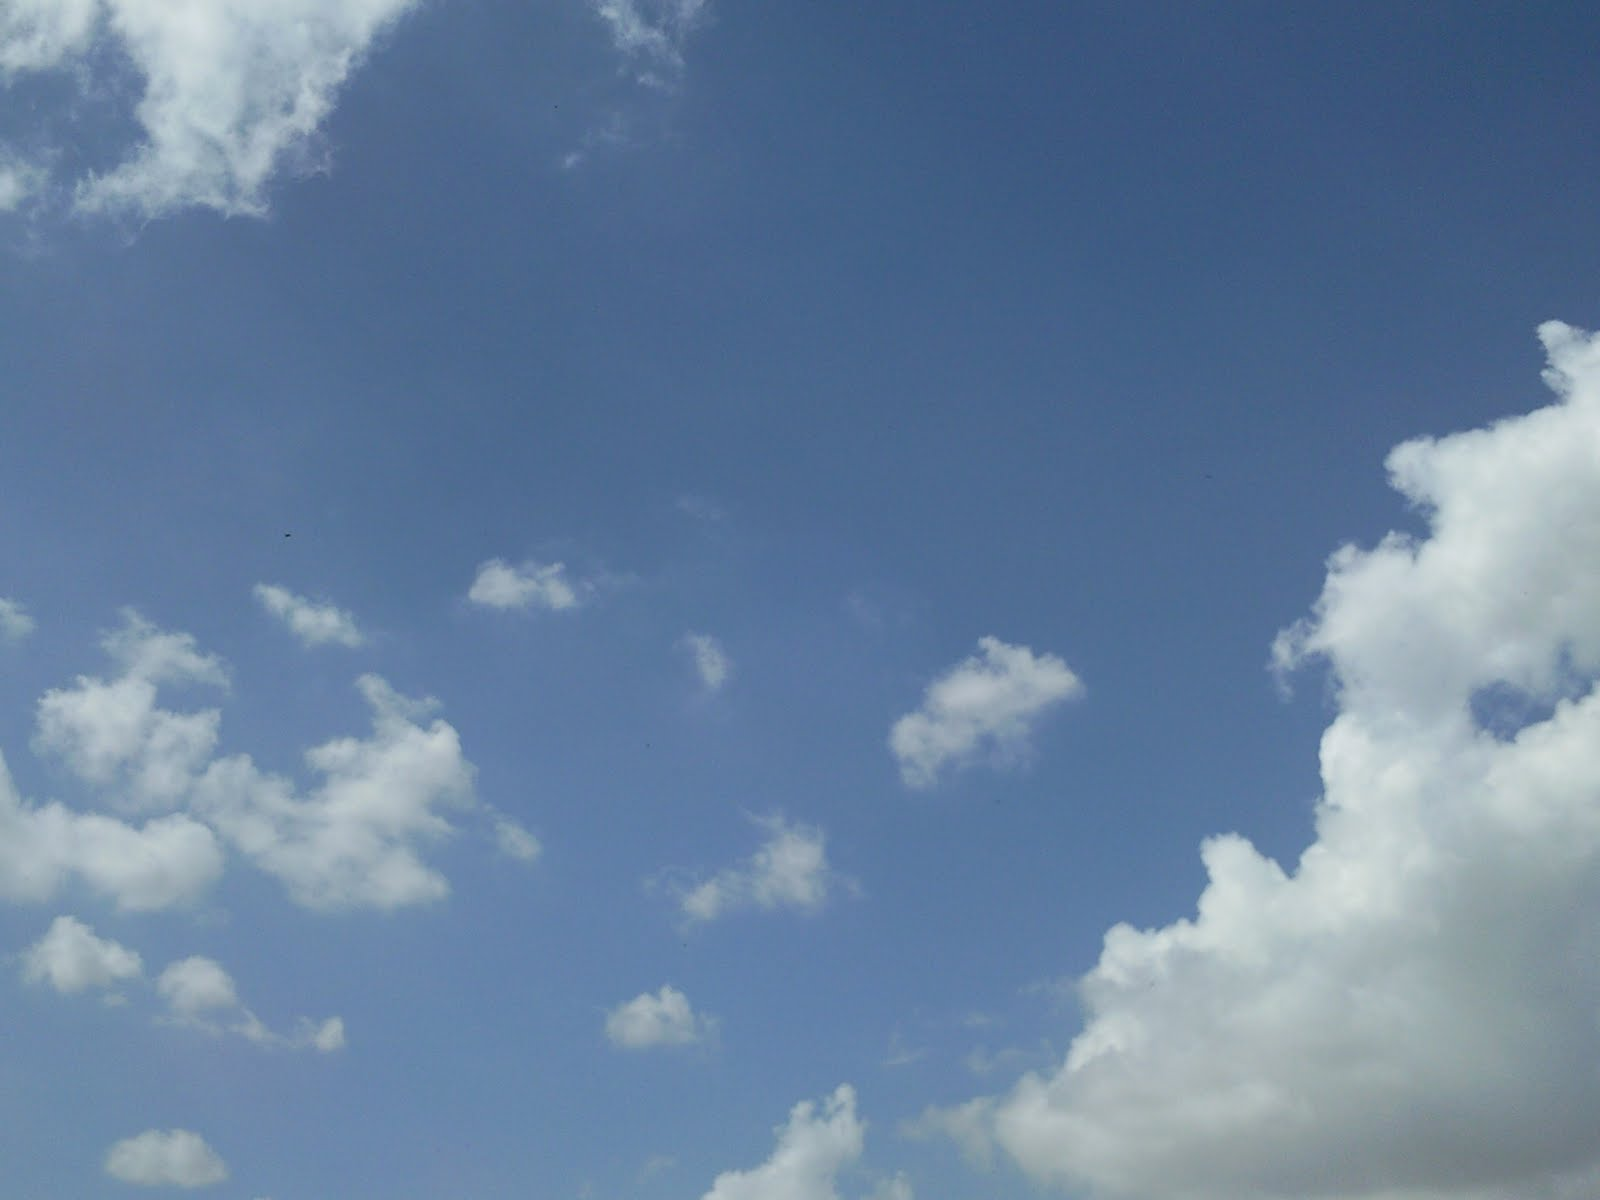 blue sky with lots of black clouds with white borders on right bottom 1600x1200